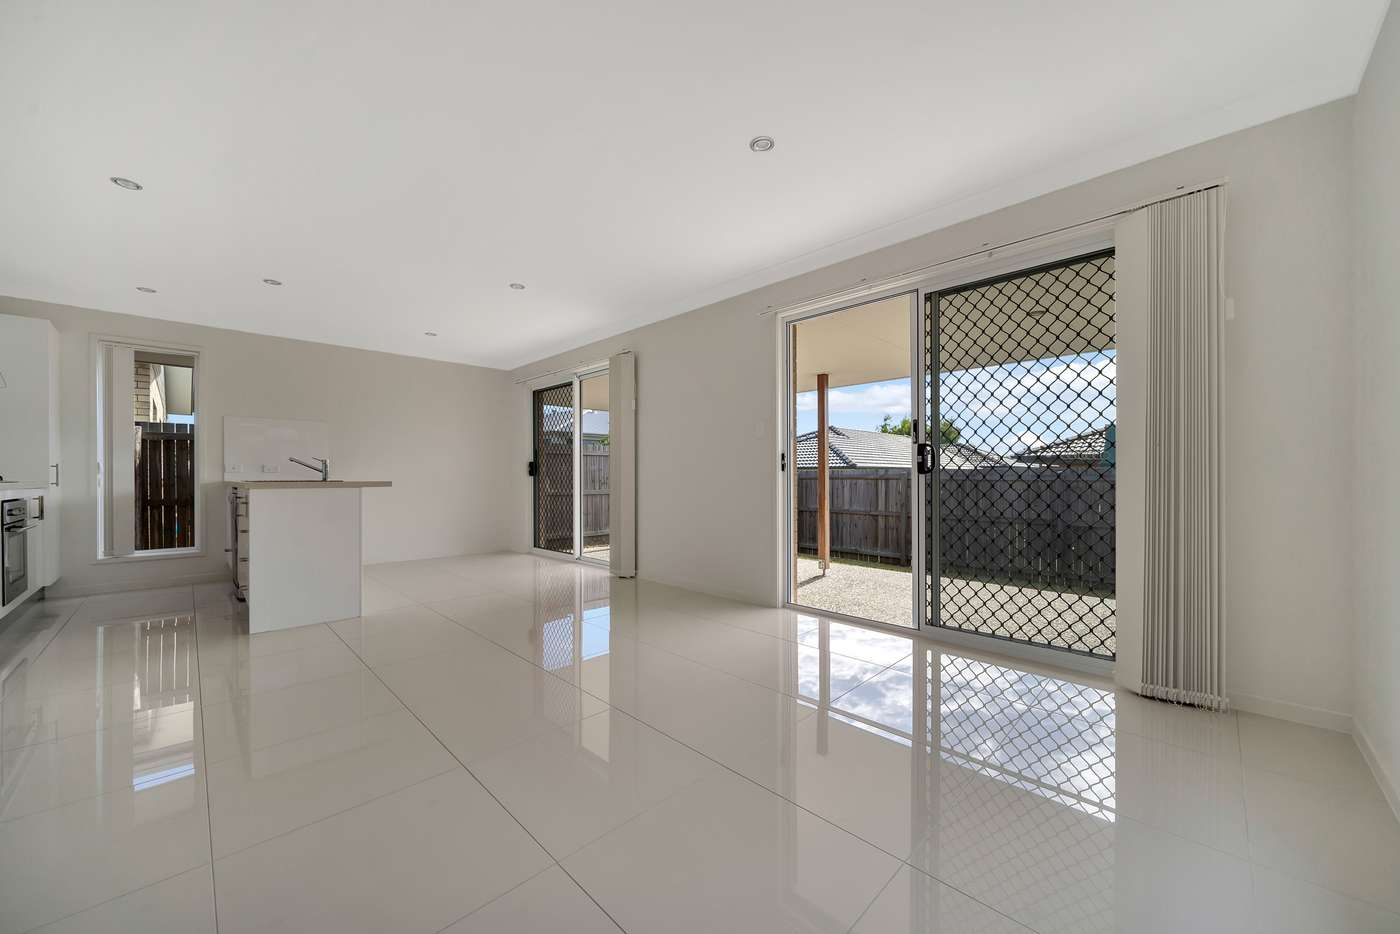 Sixth view of Homely house listing, 50 Darlington Drive, Yarrabilba QLD 4207